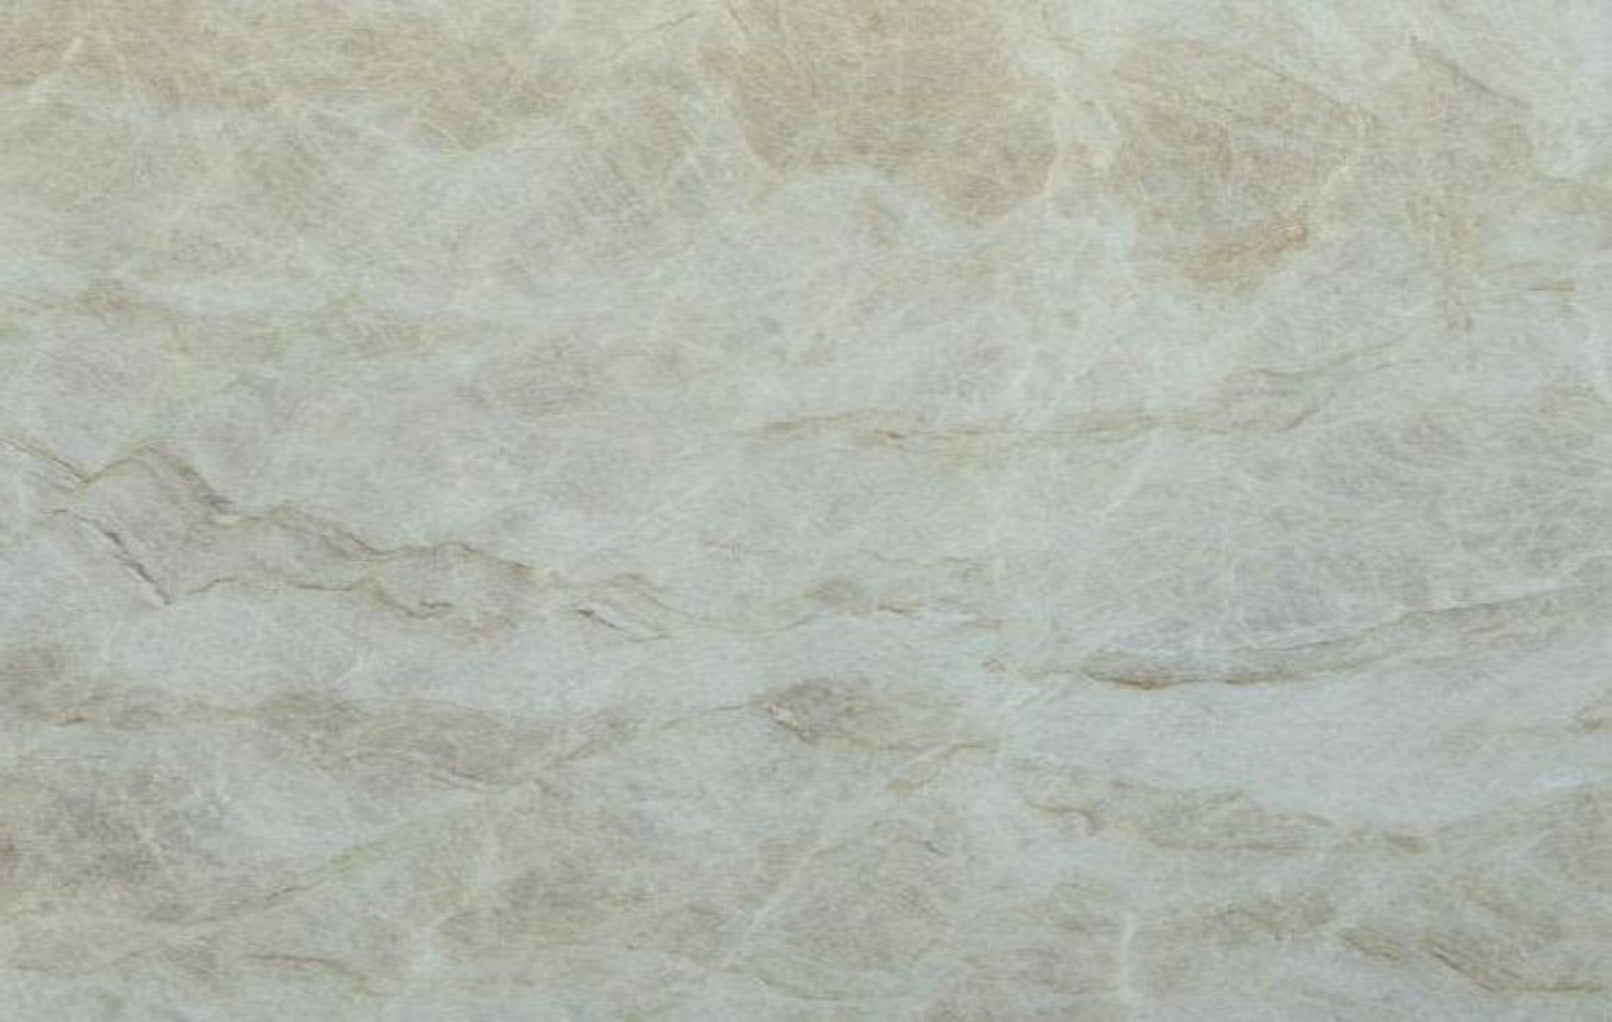 TAJ MAHAL Quartzite - Slab Series